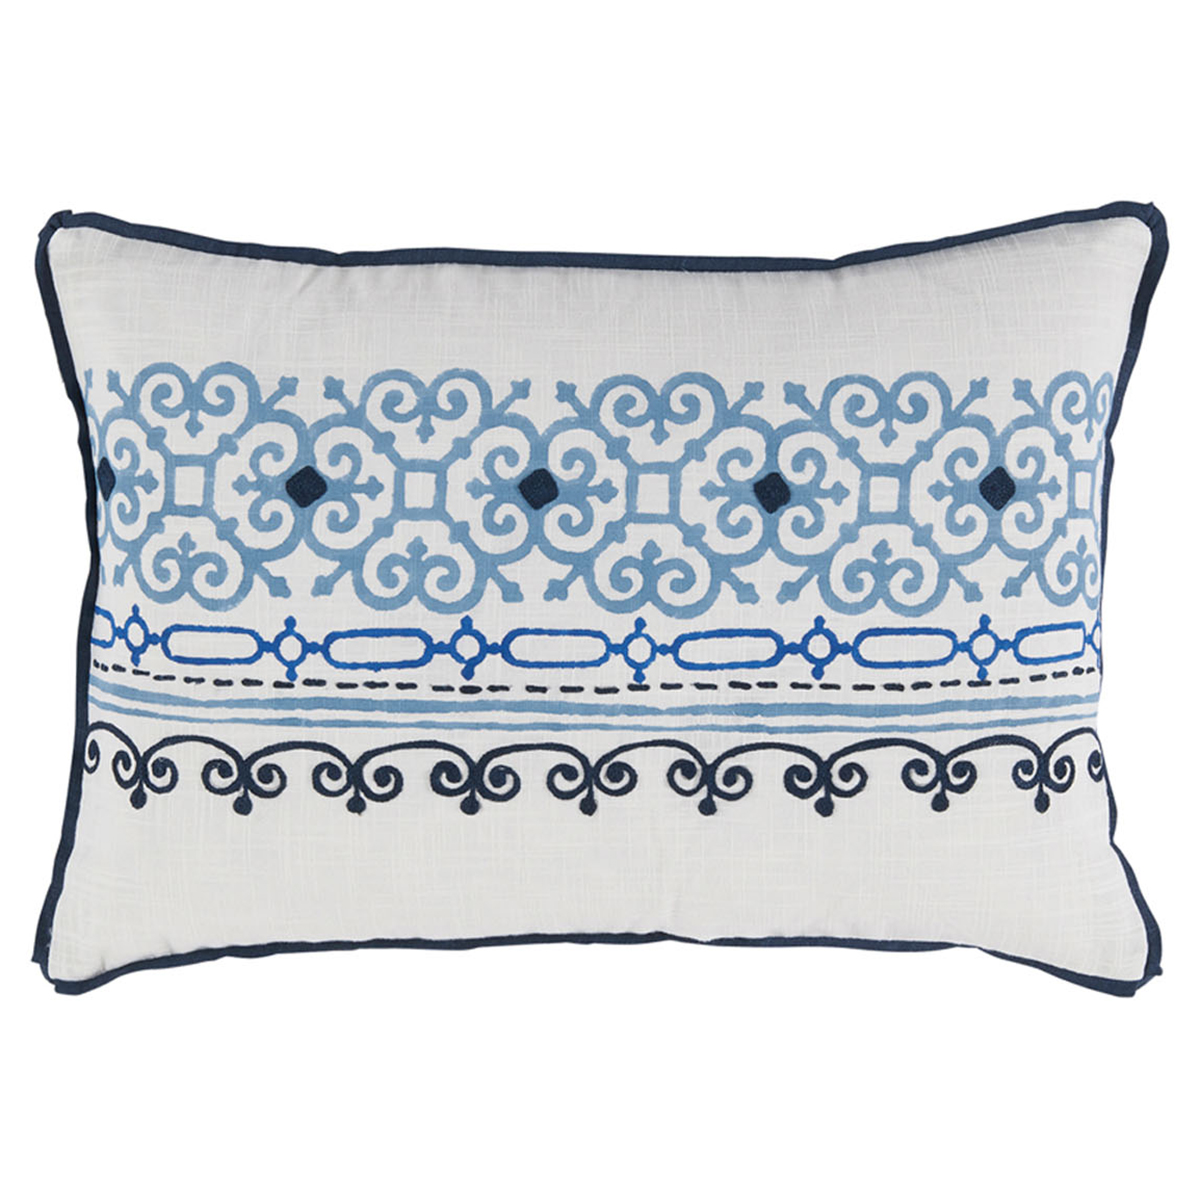 Lamont French Heritage Scroll Motif Blue Pillow - 13x19